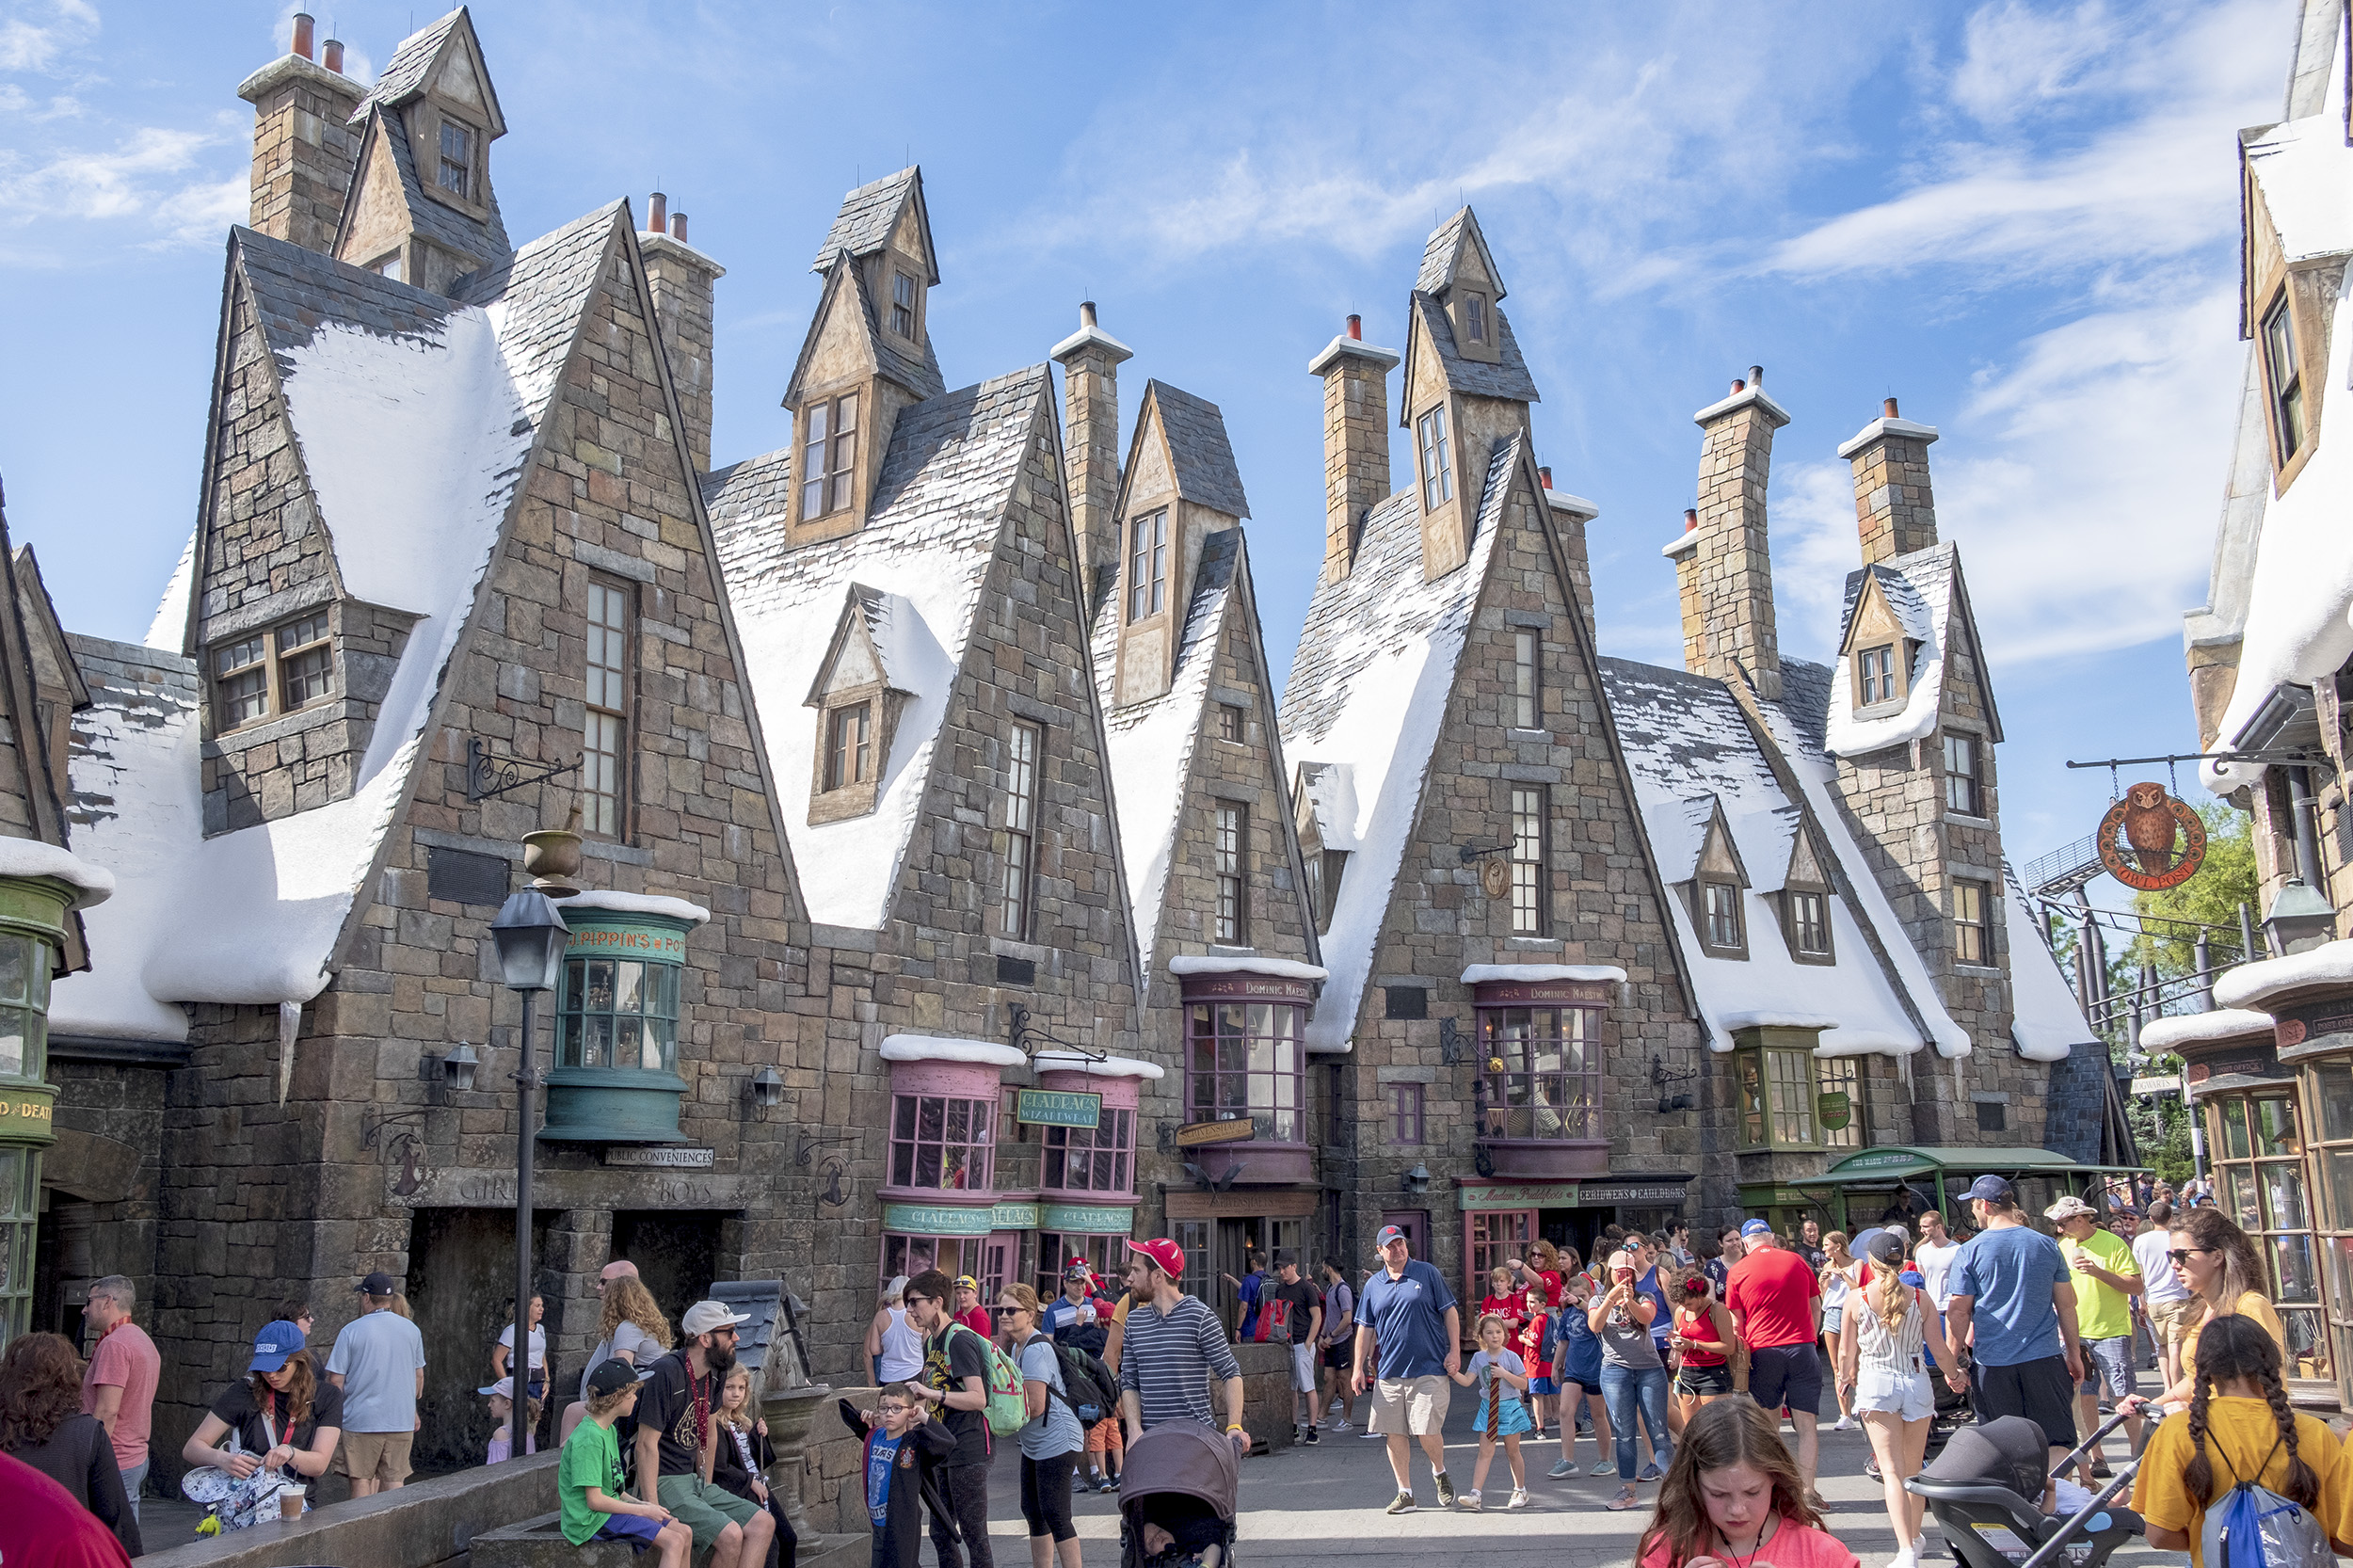 Hogsmeade Village. The wizarding world of harry potter.